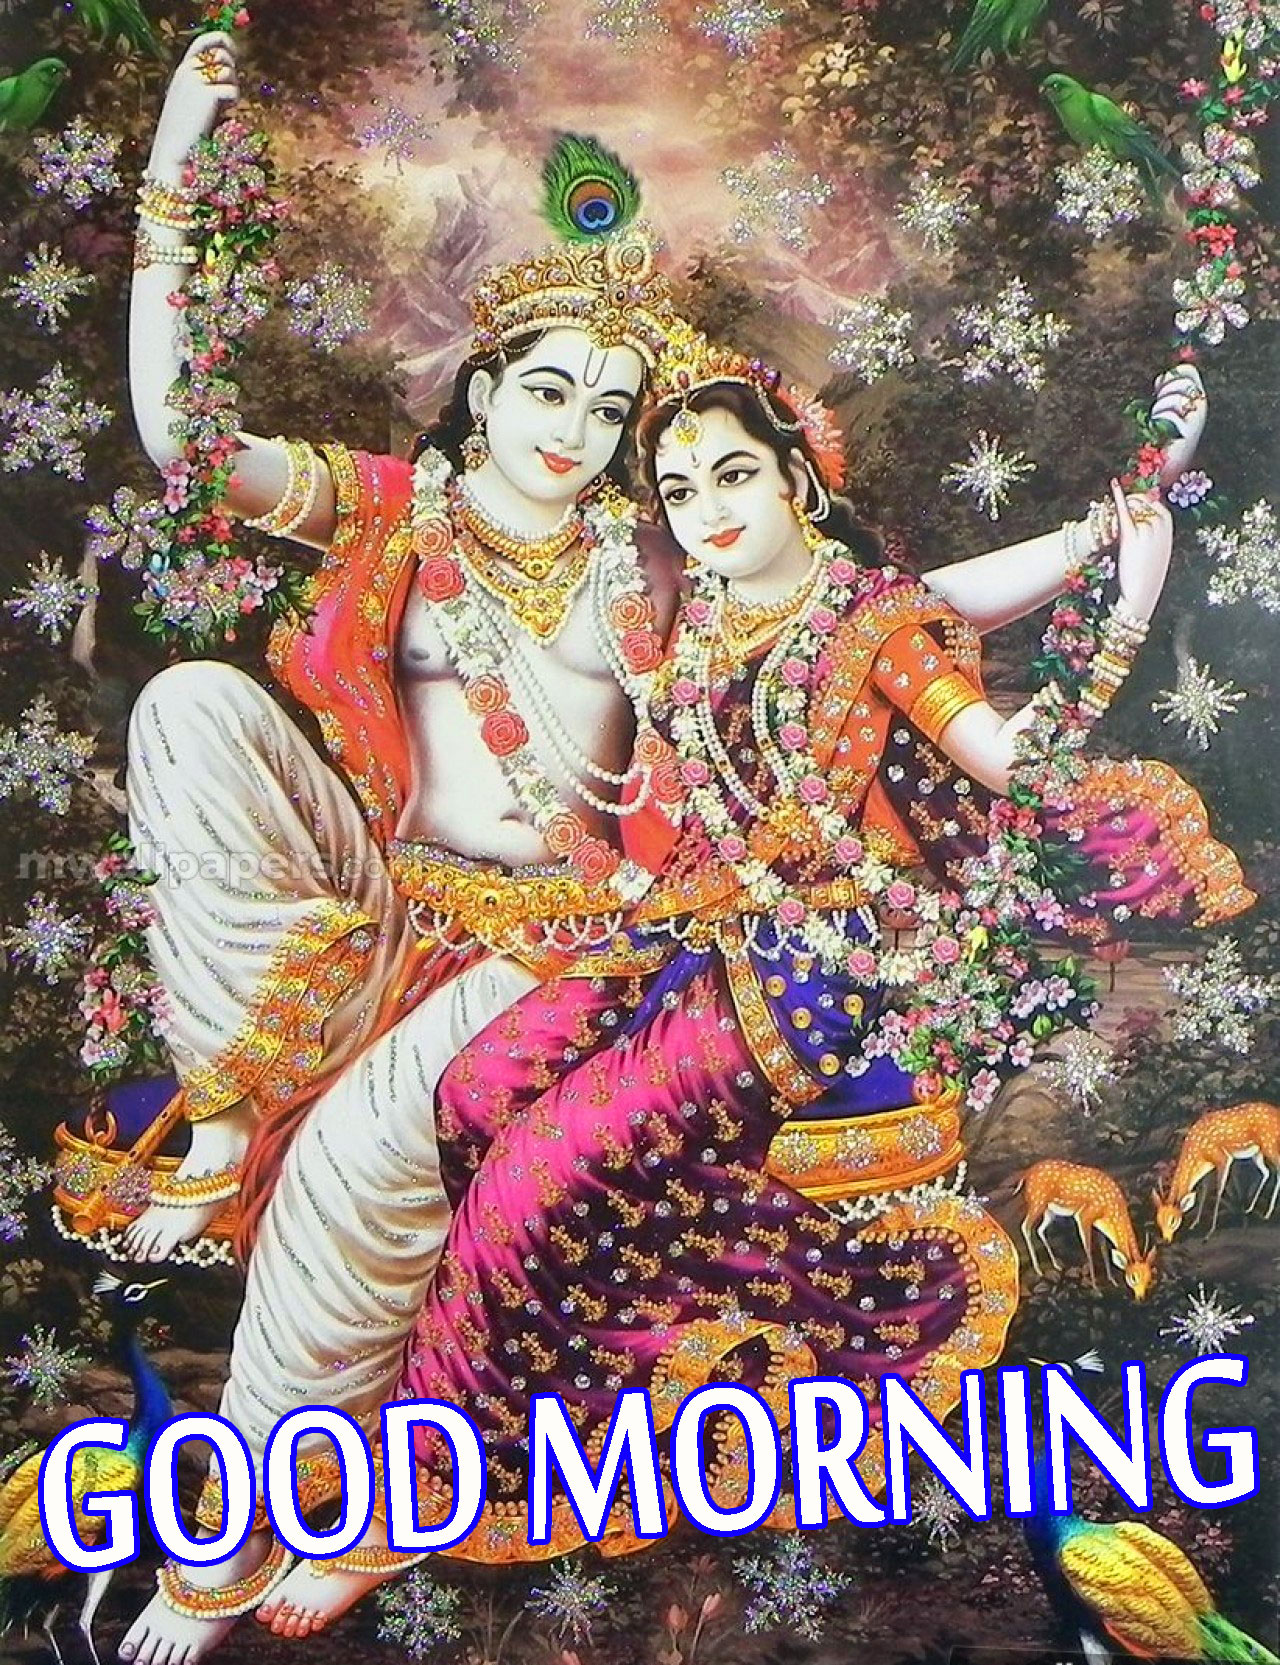 Radha Krishna Good Morning Images Wallpaper Pics Photo HD Download